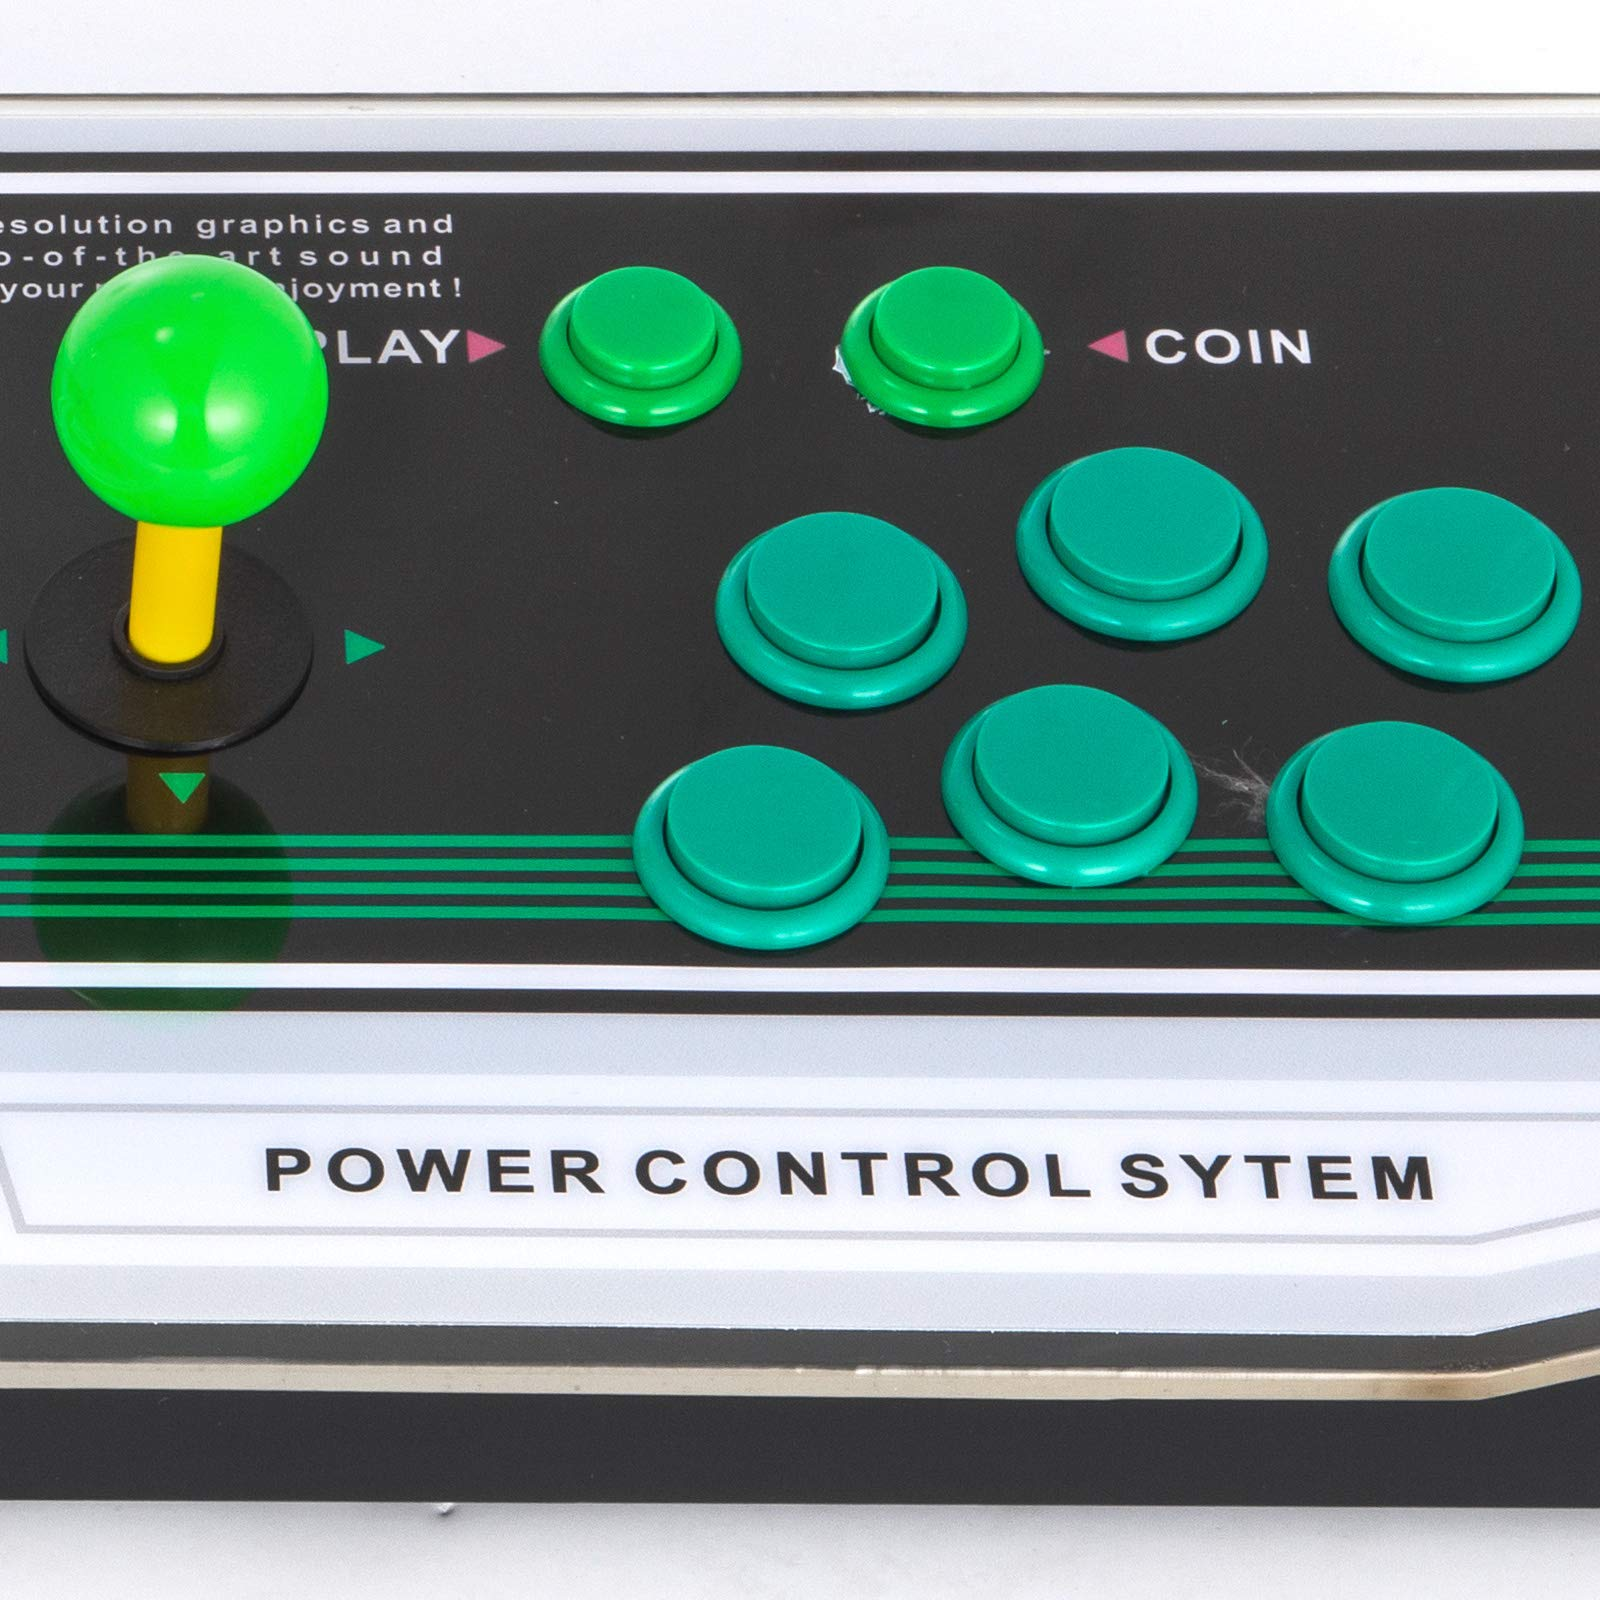 Happybuy Arcade Game Console 1280P Games 1500 in 1 Pandora's Box 2 Players Arcade Machine with Arcade Joystick Support Expand Games for PC / Laptop / TV / PS4 by Happybuy (Image #8)